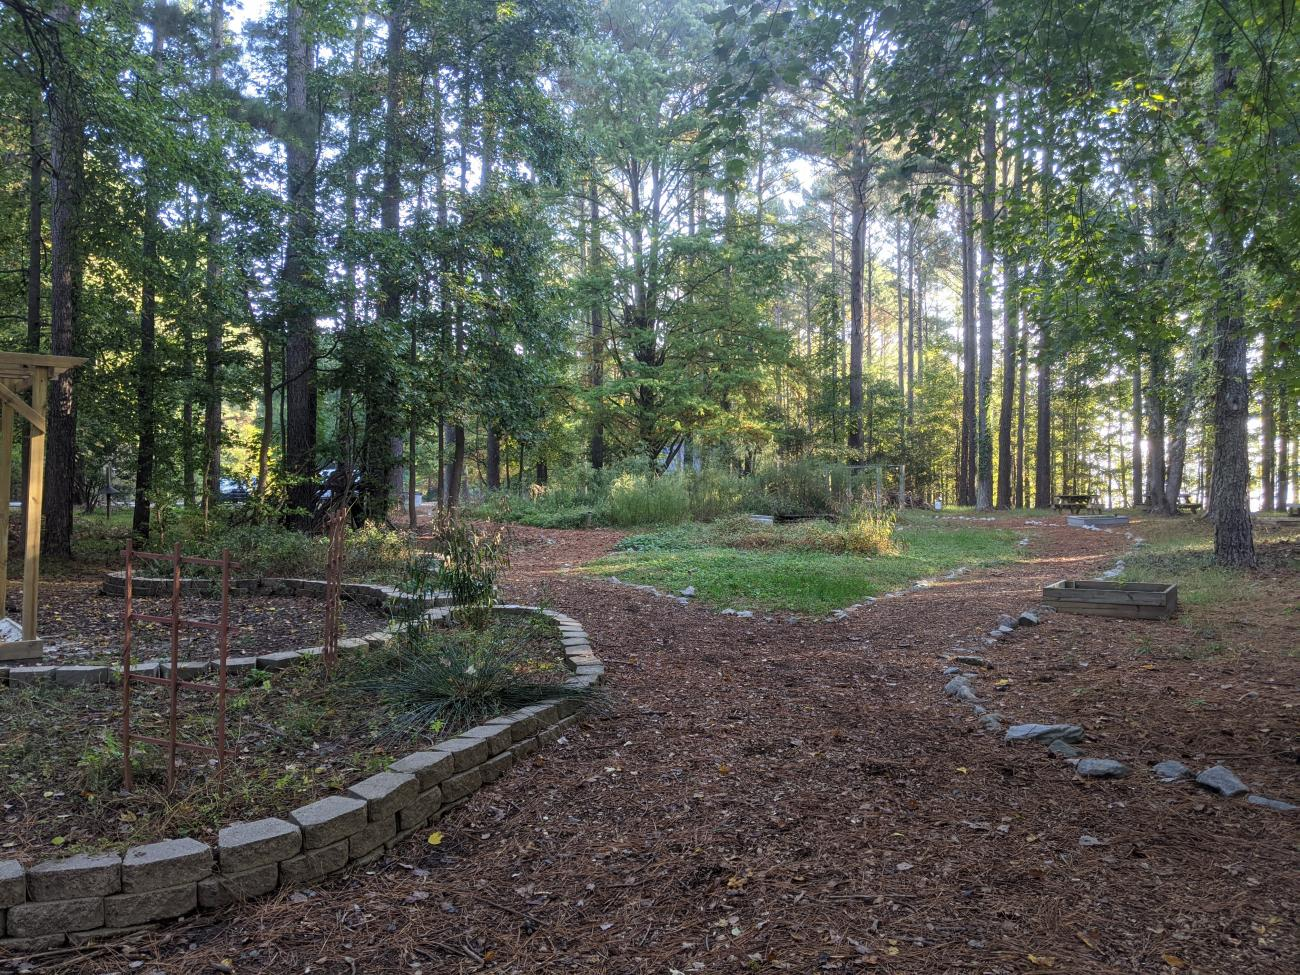 Photo of the Educational Garden showing mulched paths and raised beds